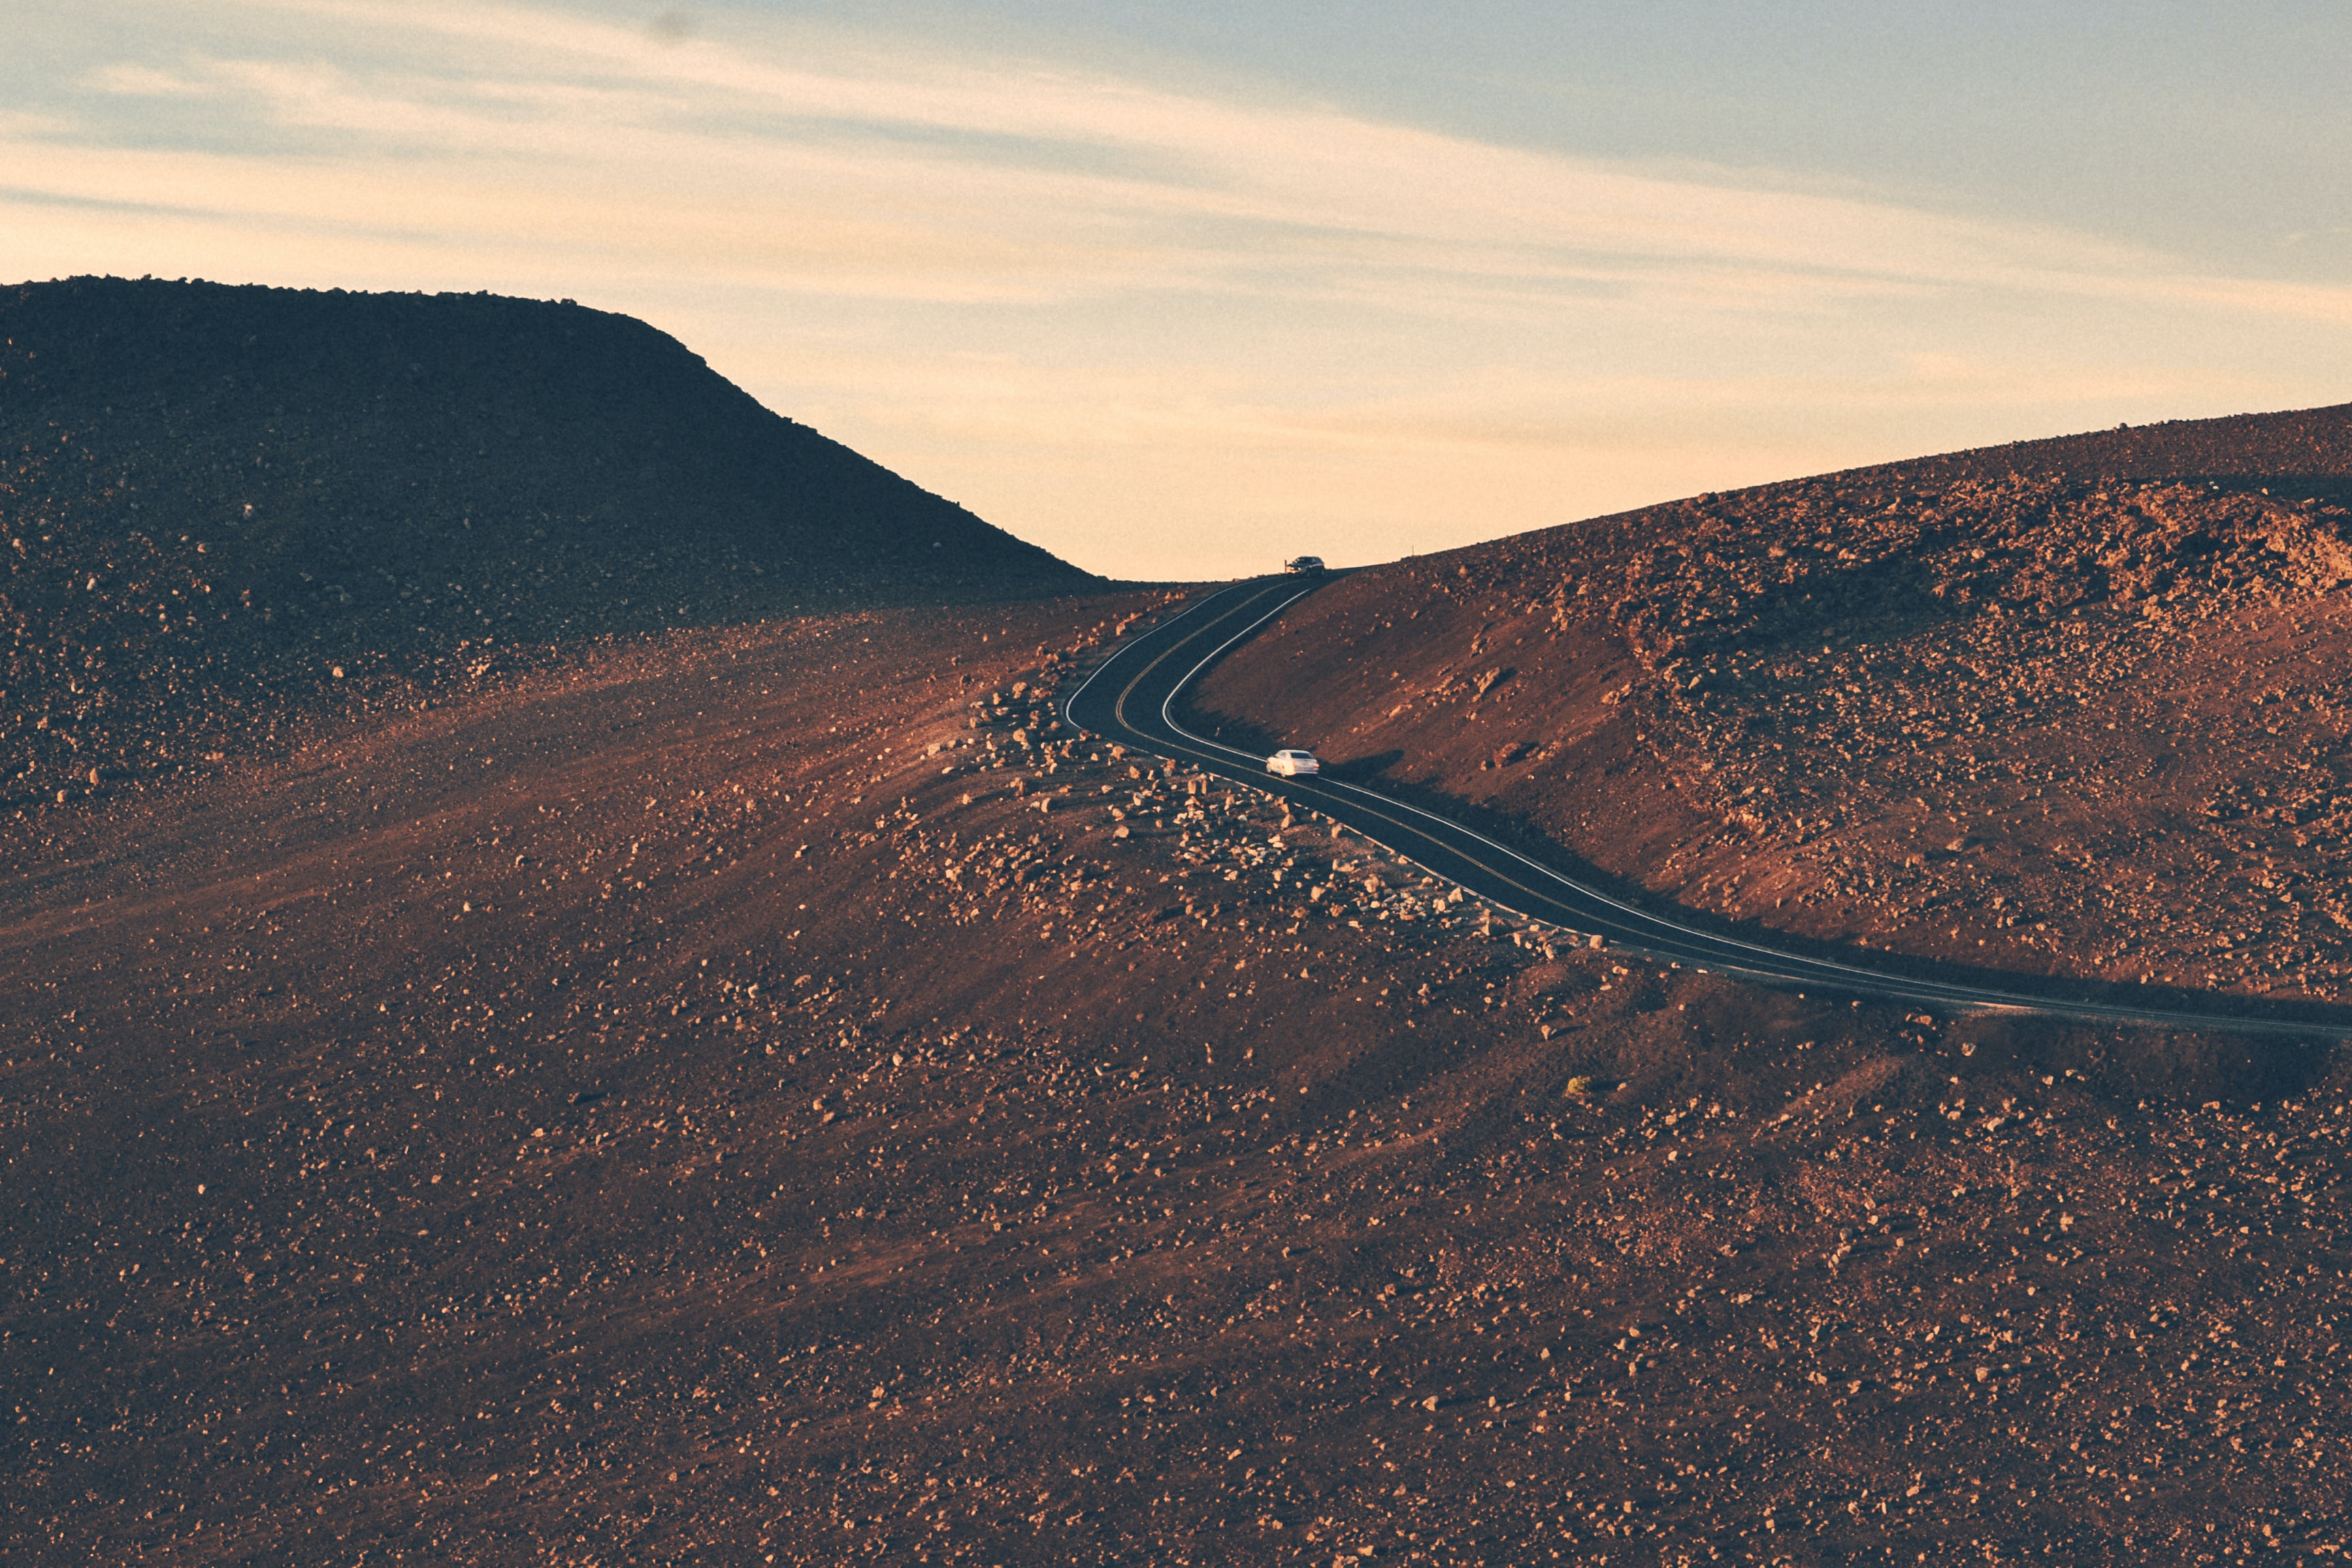 Two cars driving up an asphalt road on a slope covered with small rocks during sunset